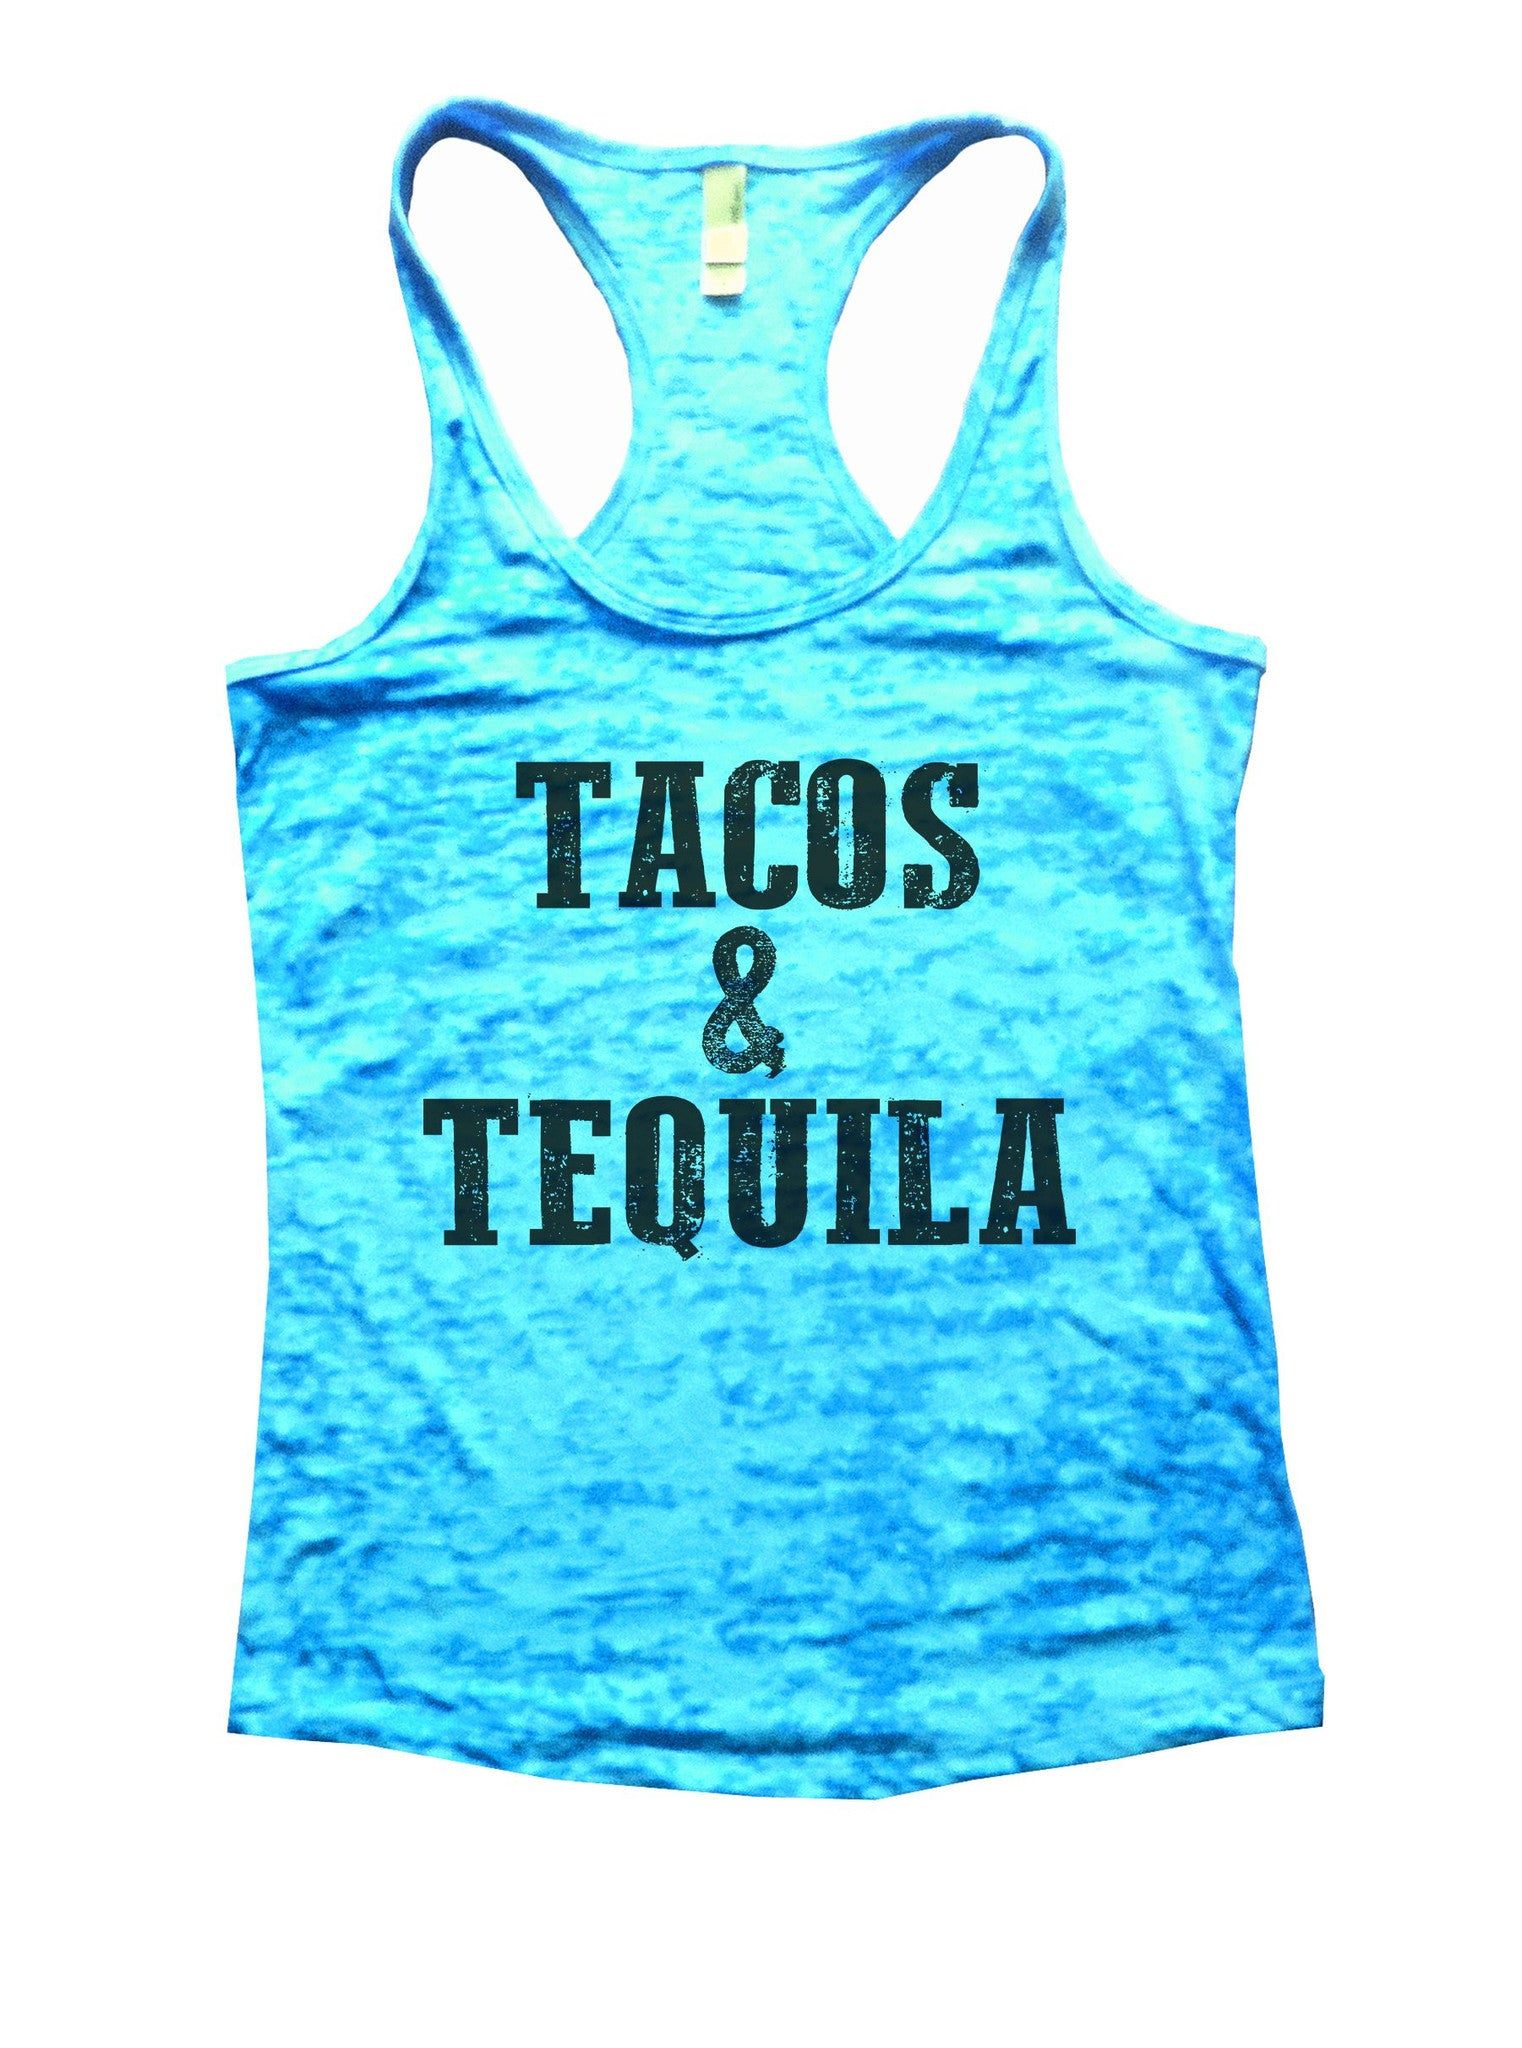 Tacos & Tequila Burnout Tank Top By BurnoutTankTops.com - 1103 - Funny Shirts Tank Tops Burnouts and Triblends  - 4